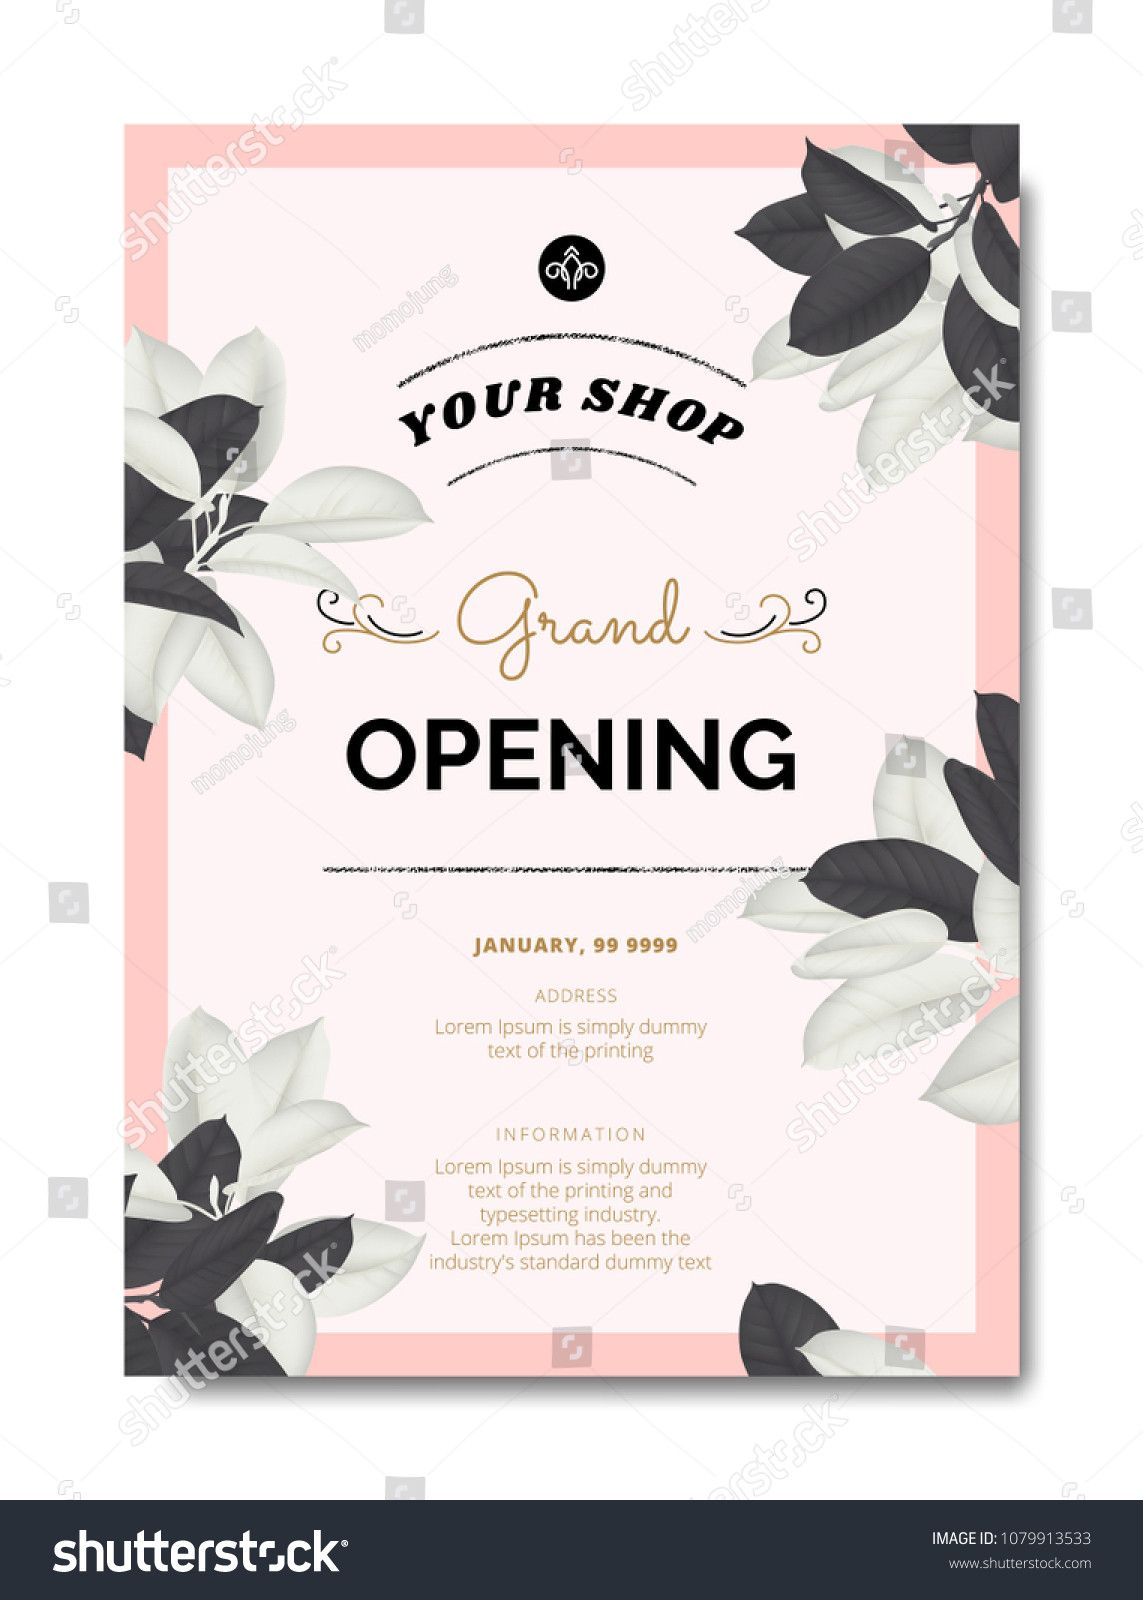 Grand Opening Invitation Template Shop Opening Invitation Card Grand Opening Invitations Invitation Card Sample